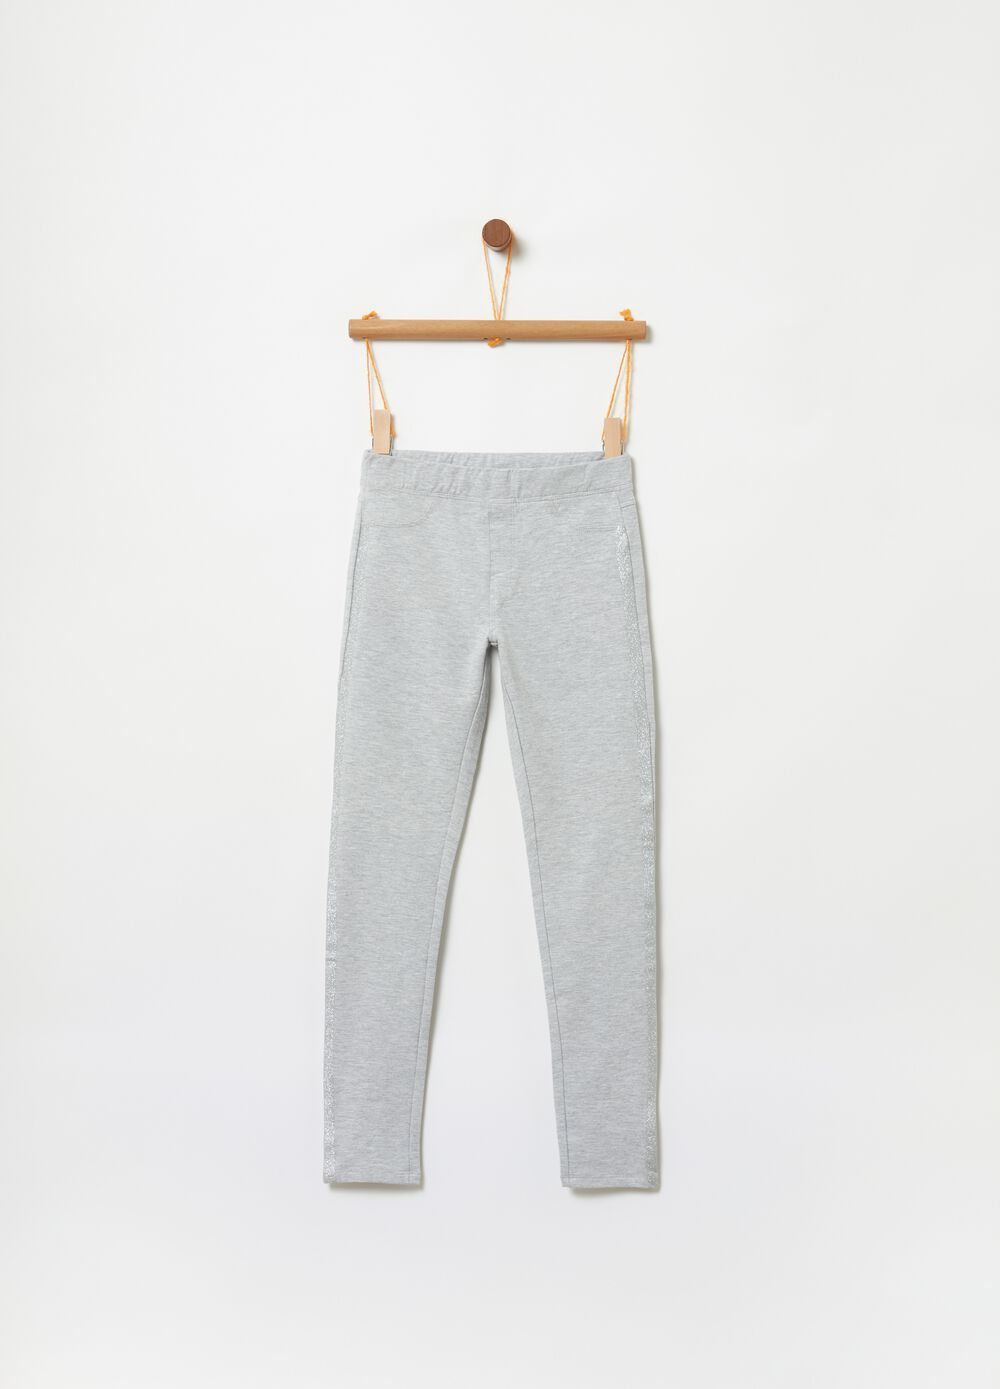 French terry organic cotton trousers